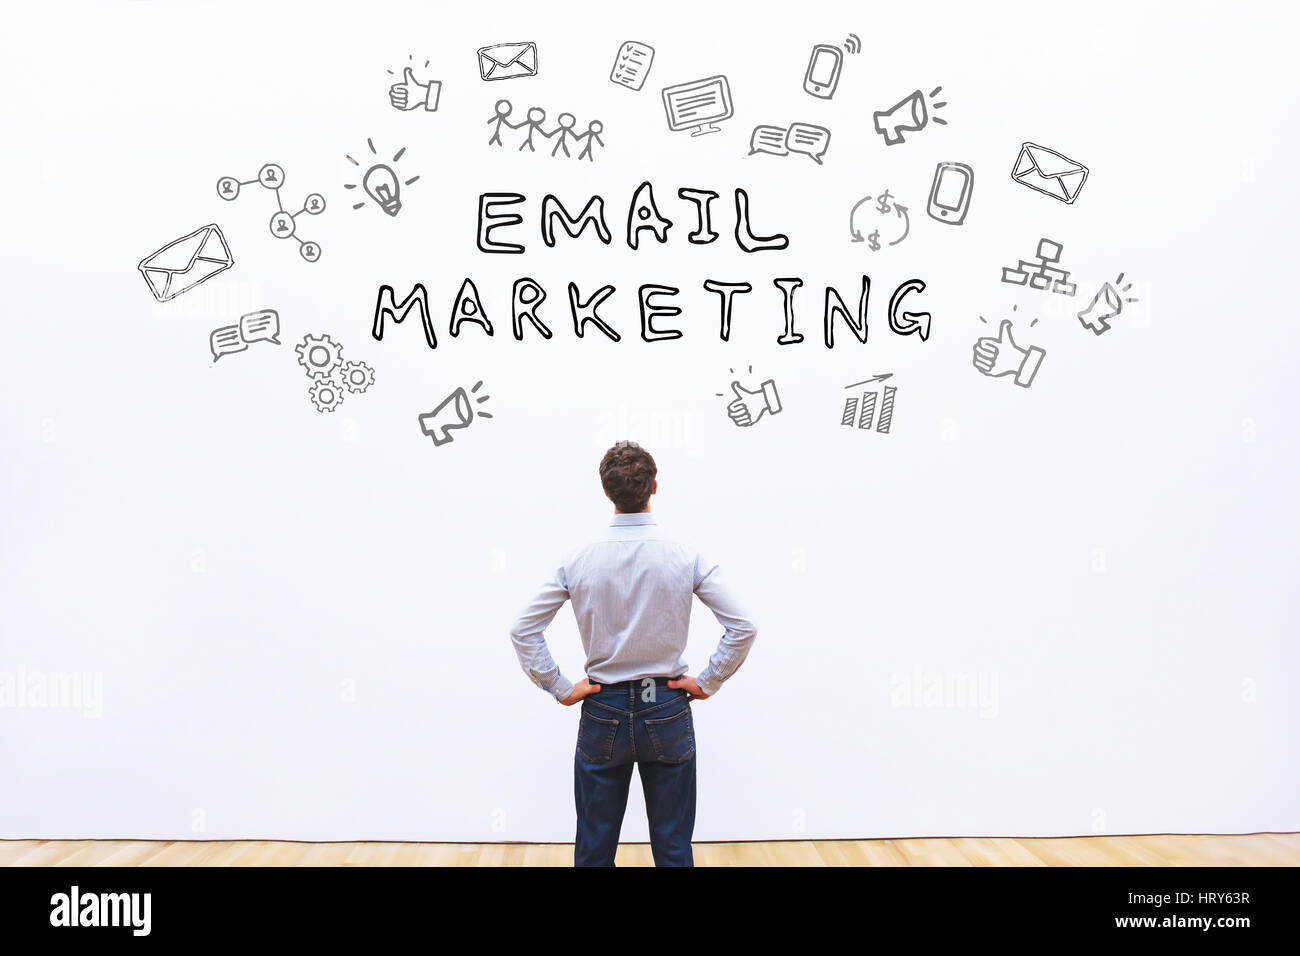 email marketing concept, word with icons sketch - Stock Image